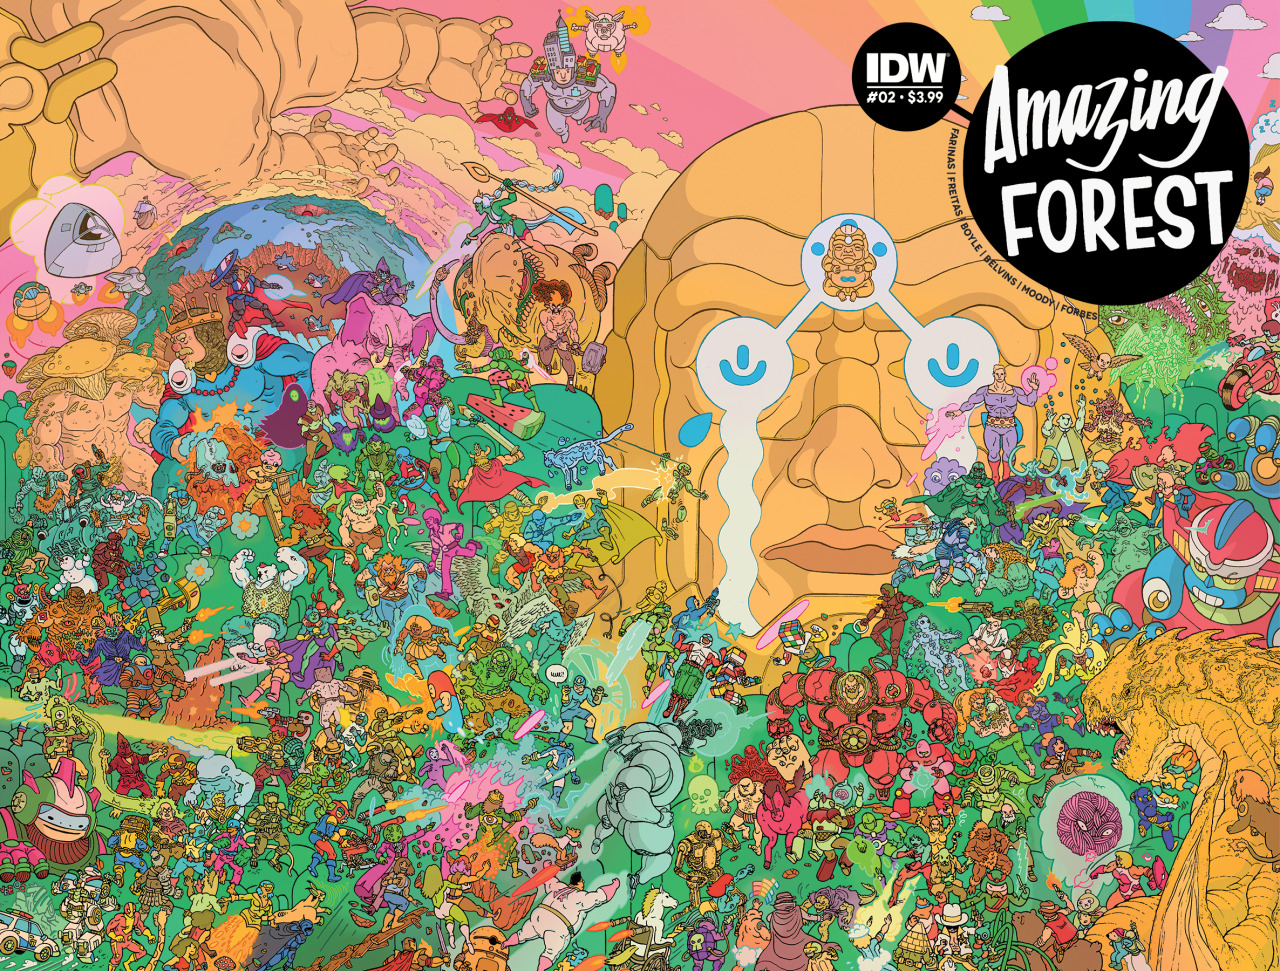 Amazing Forest #2 wraparound cover by Ulises Farinas.